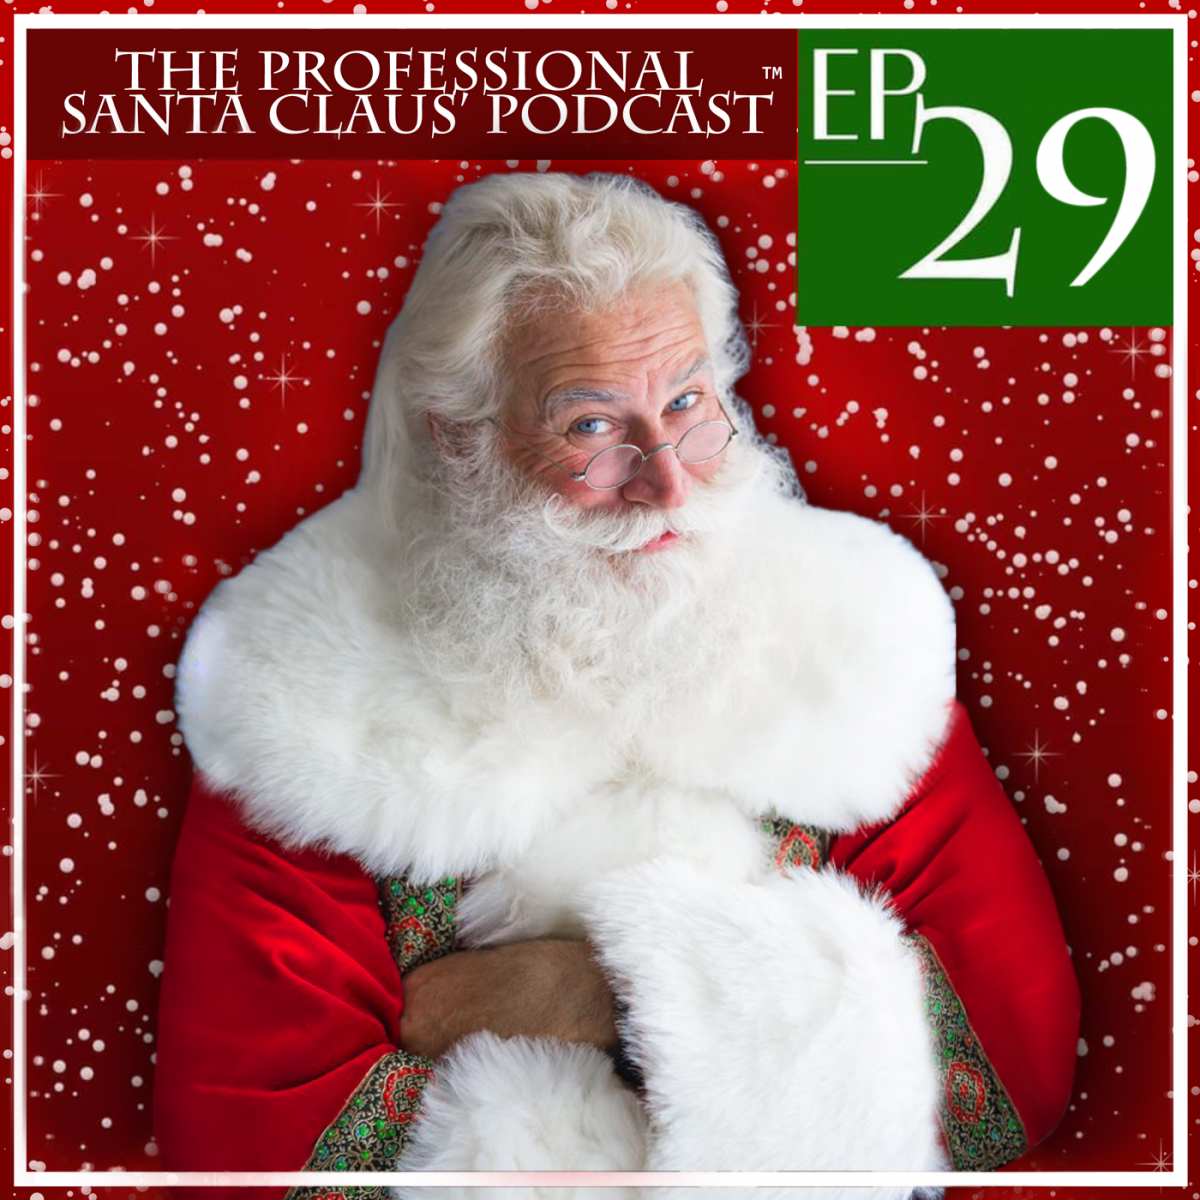 large.SantaPodcastCortneyLoftonArt.png.7a13b4f58838d6b4715d81cbc0cd24d3.png